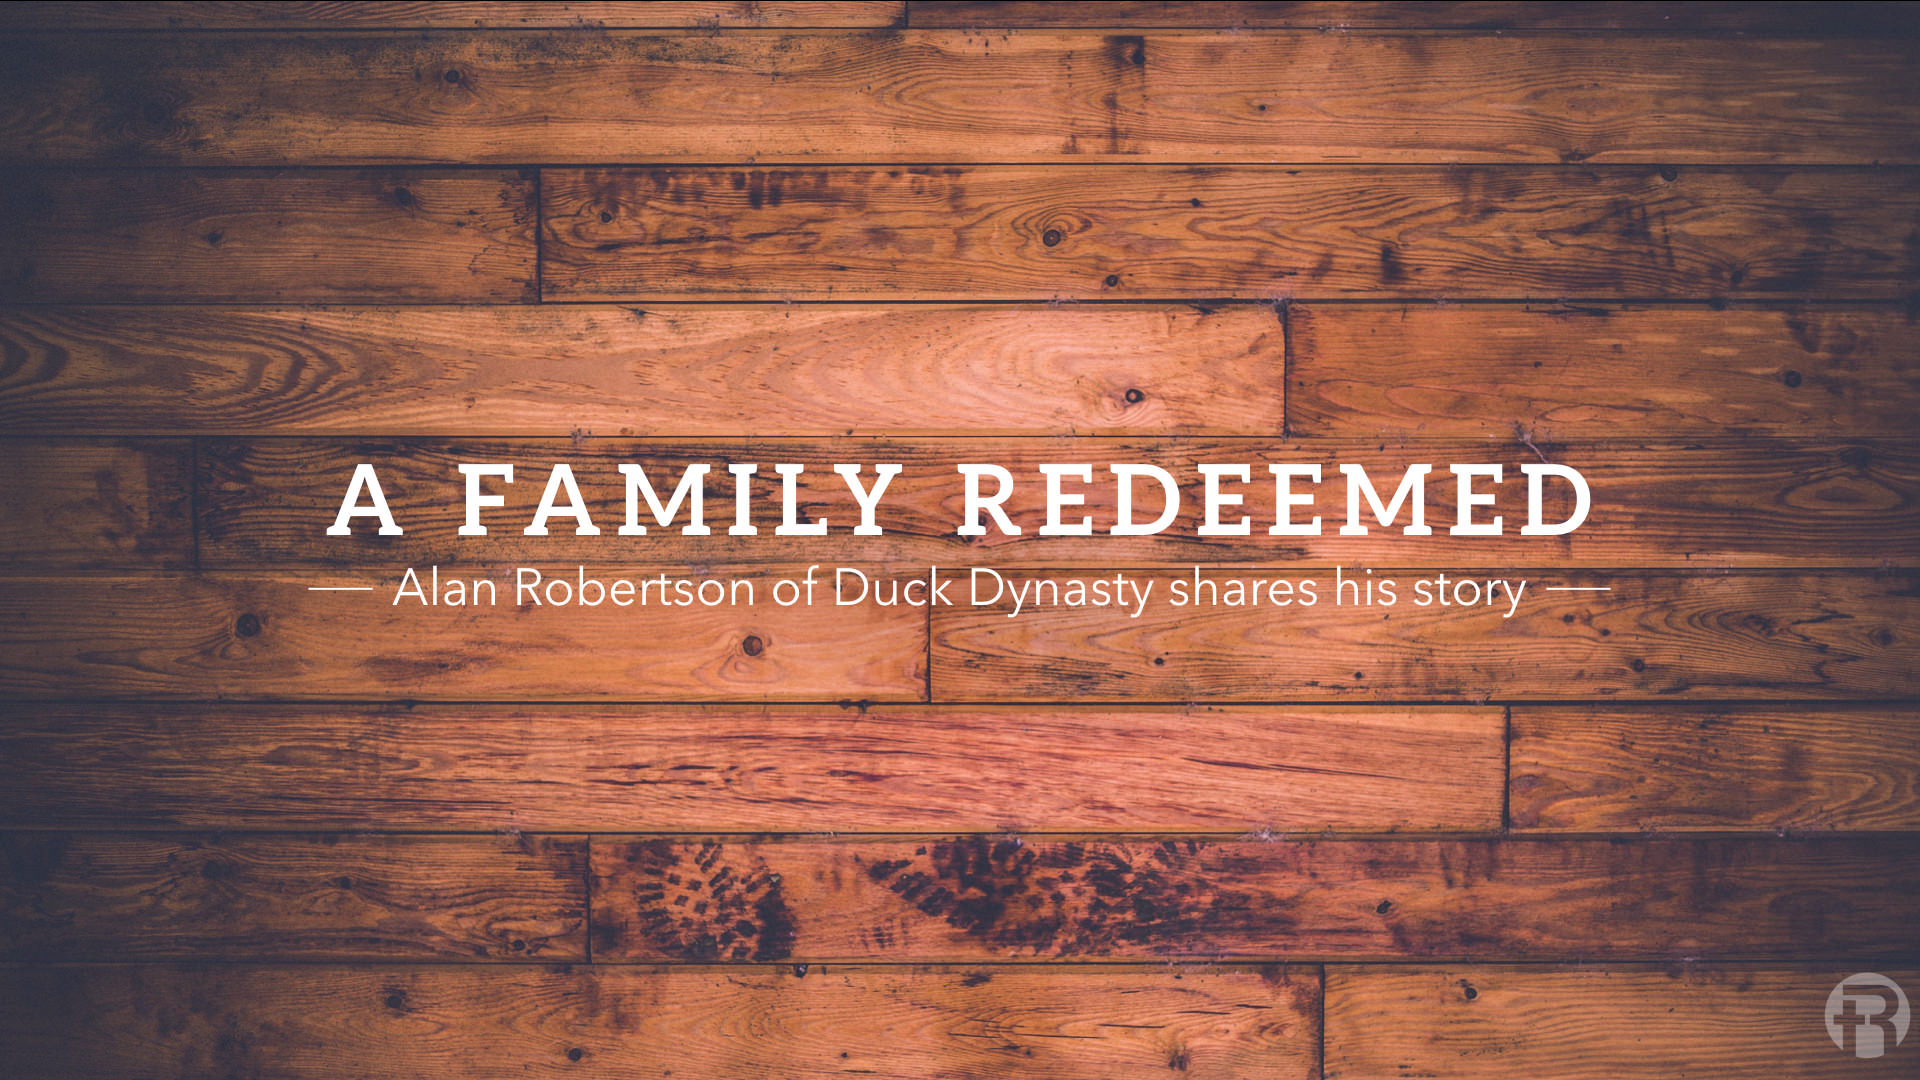 ith humor and candor, Alan Robertson shares the story God has authored in his family.